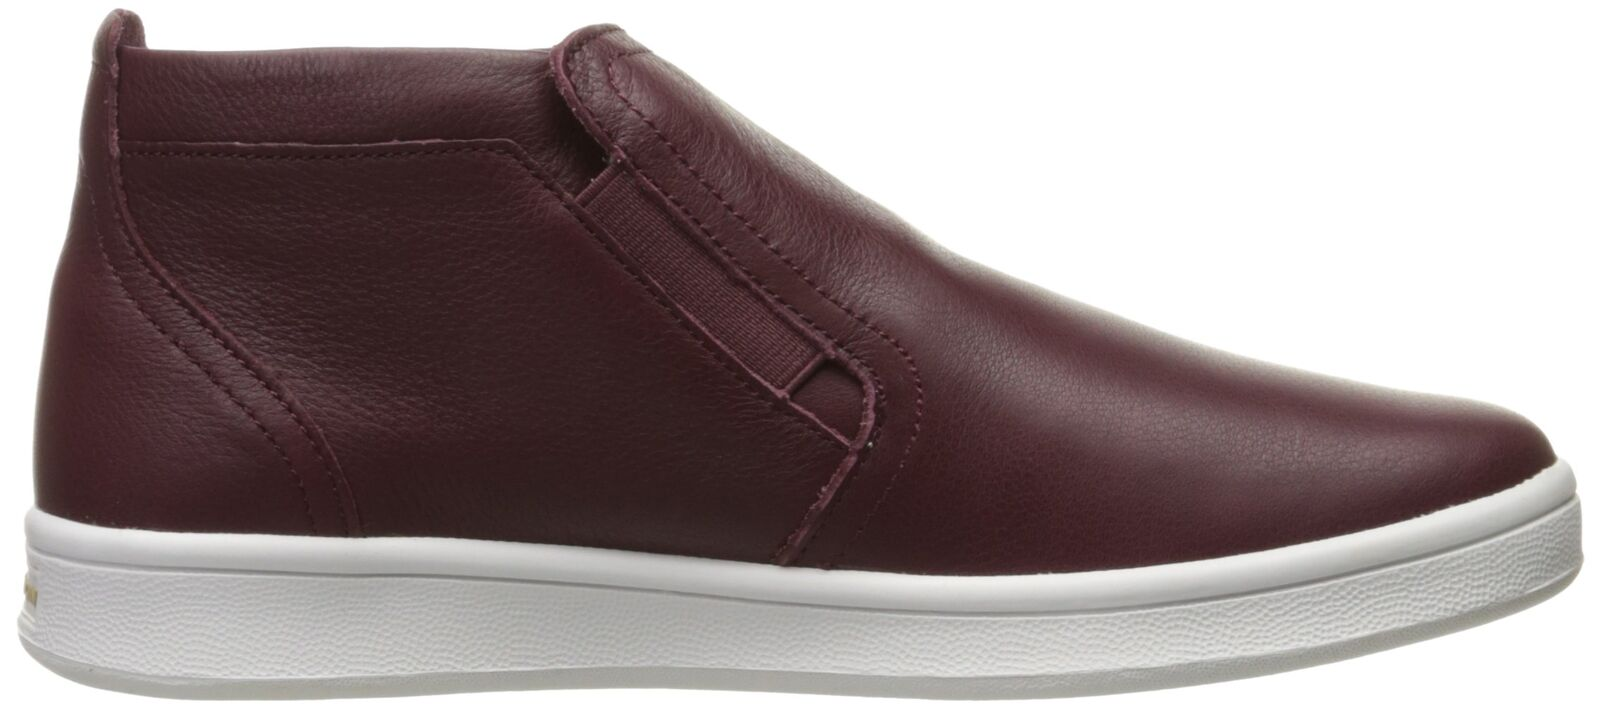 a5c097d24ec ... Mark Nason Los Angeles Angeles Angeles Women s Uptown Fashion Sneaker  Burgundy 5 M US 083a5f ...